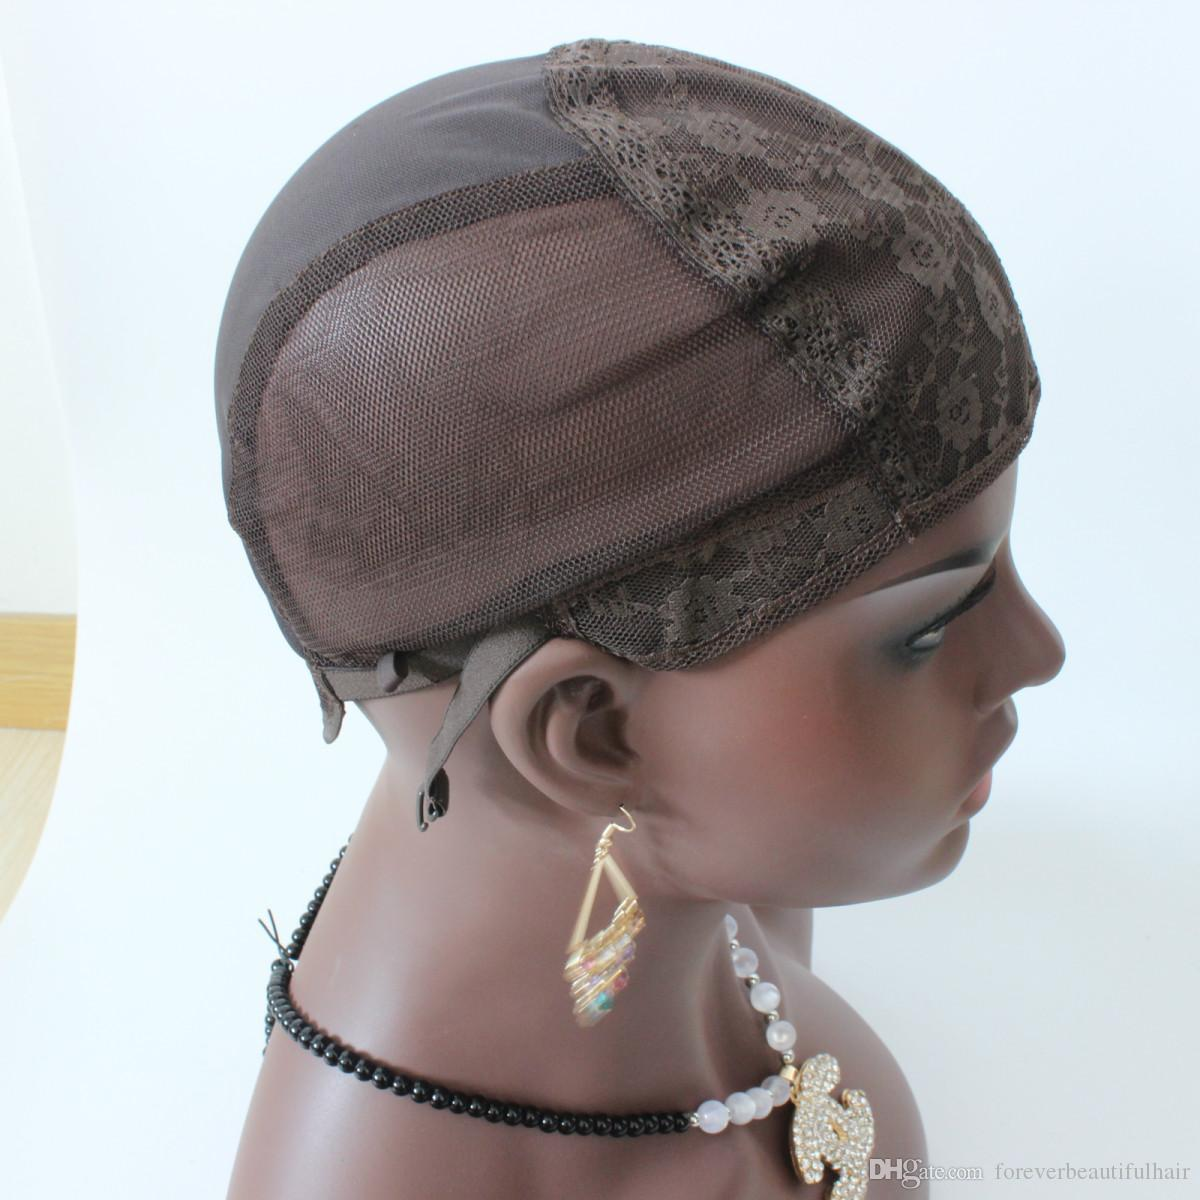 Jewish wig cap brown color S/M/L Glueless Wig Caps for Making Wigs Stretch Lace Weaving Cap Adjustable Straps Medium Brown